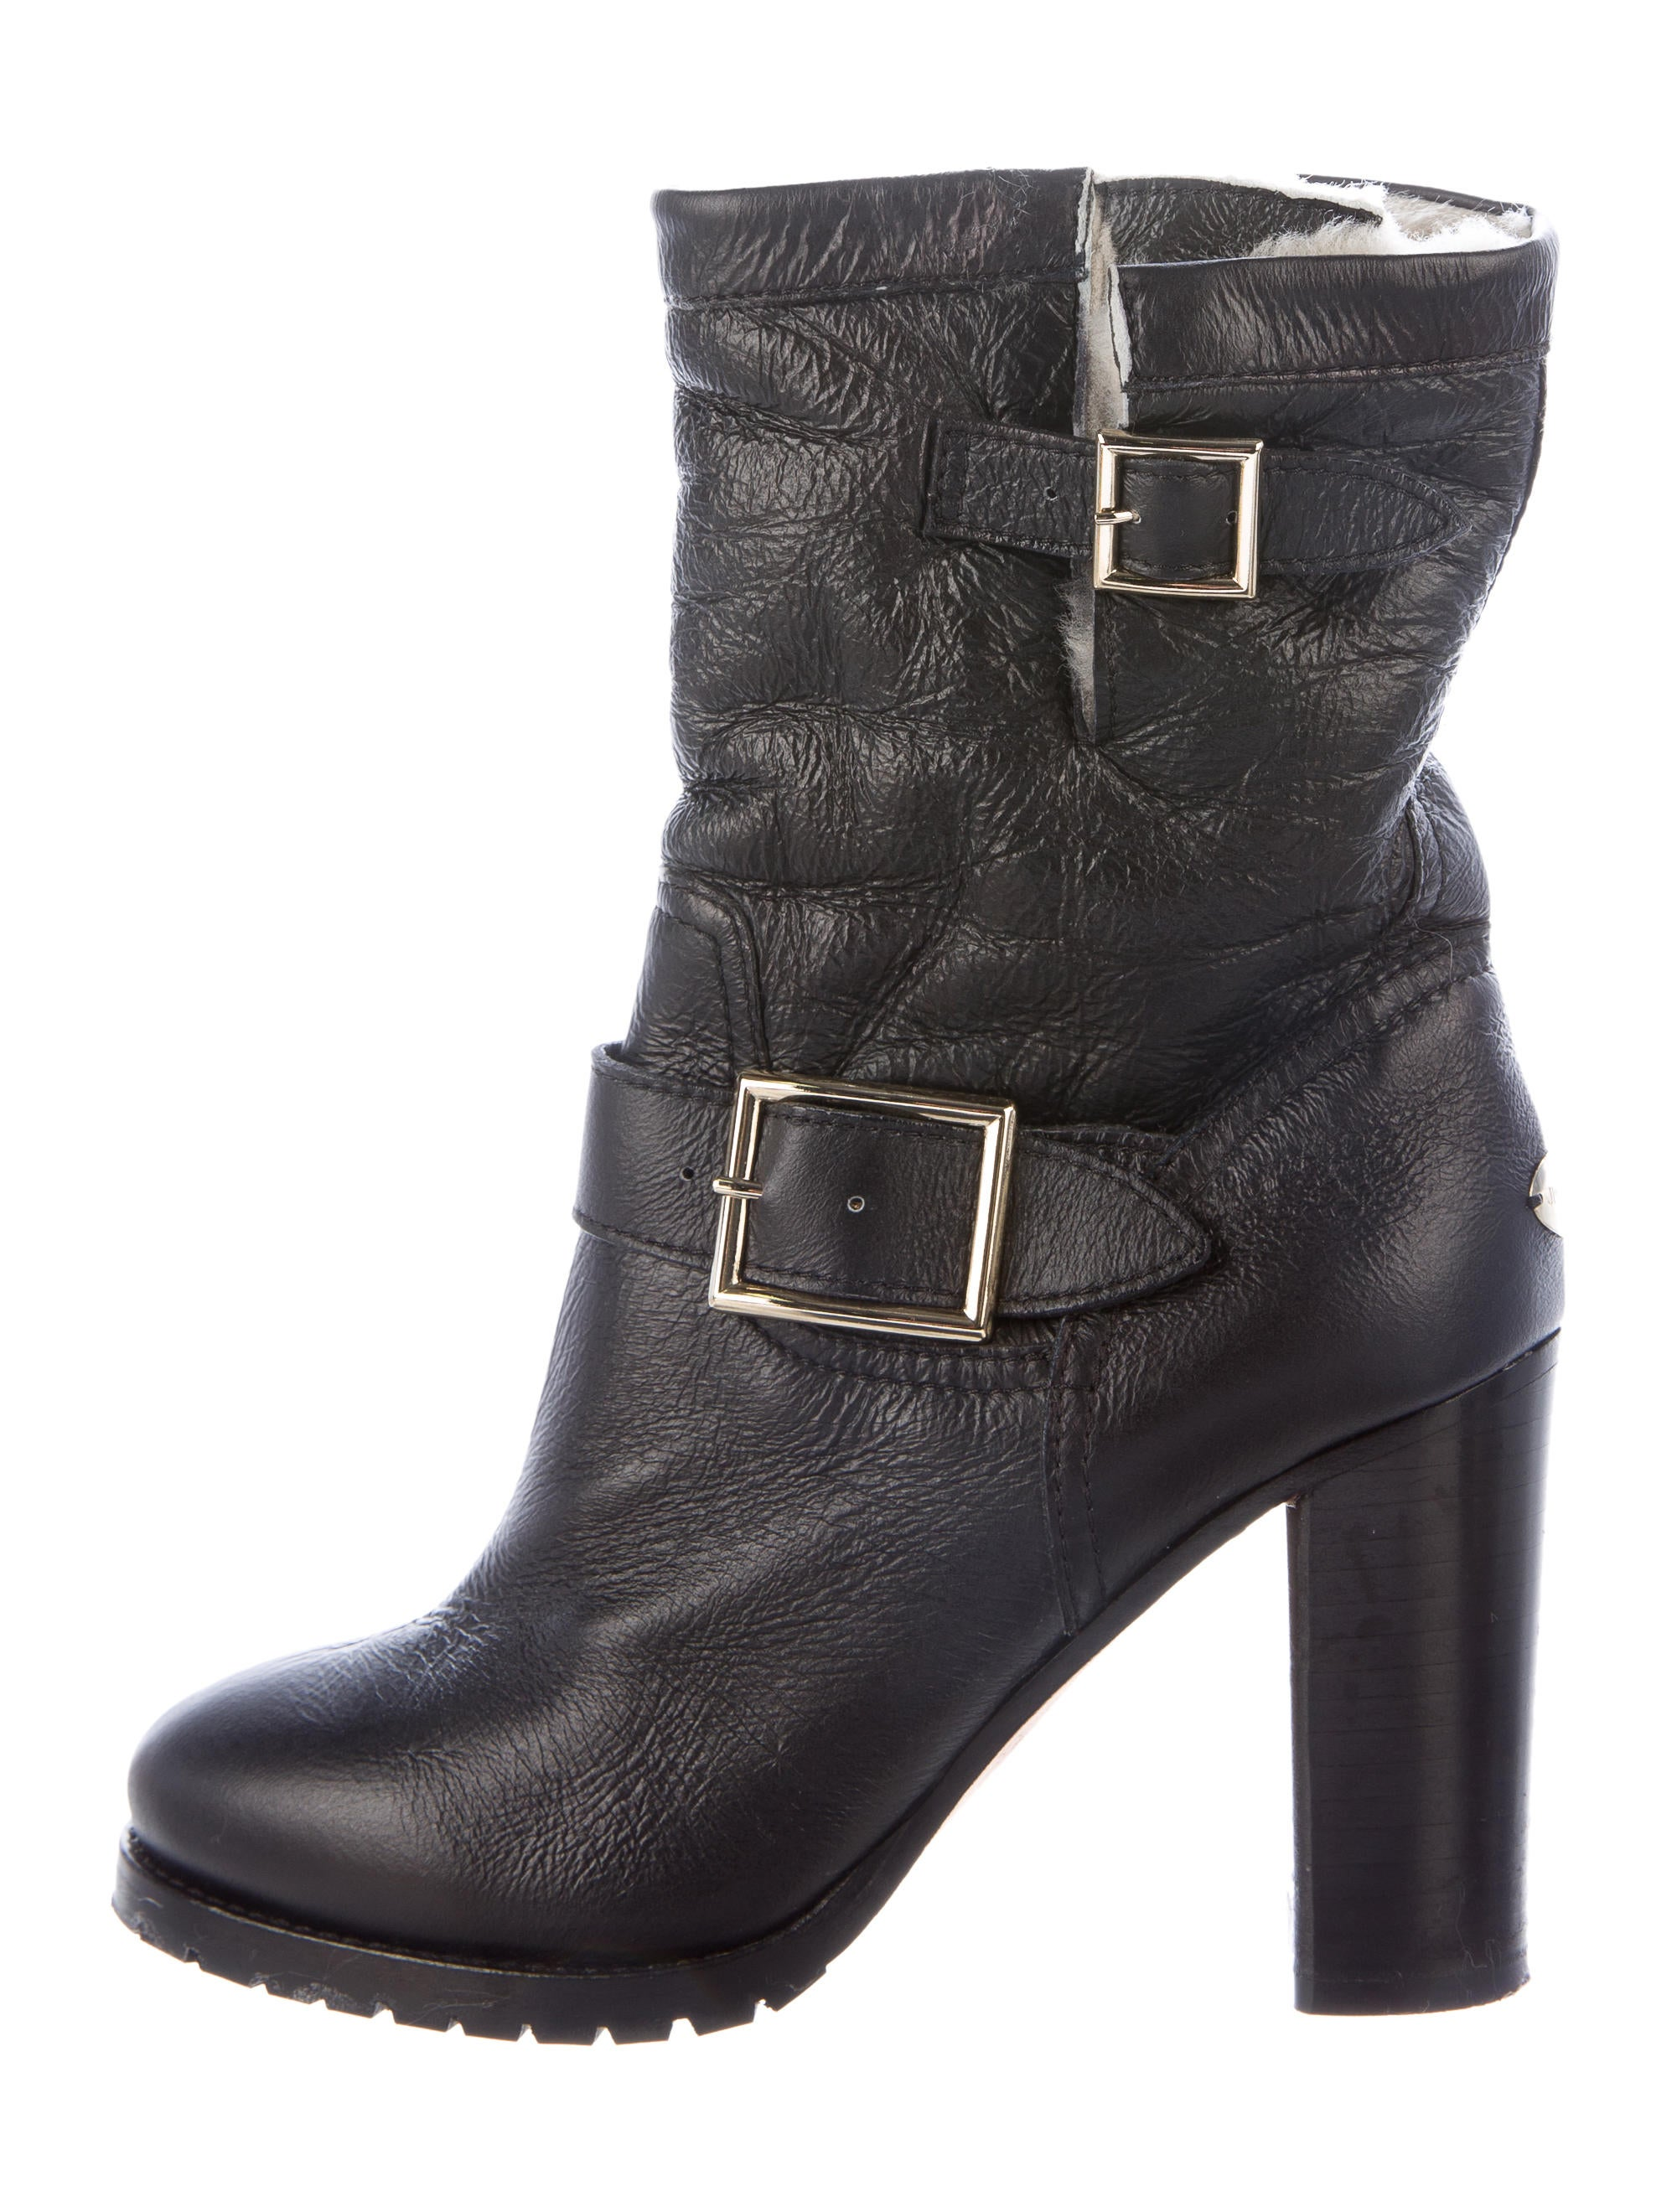 jimmy choo shearling toe ankle boots shoes